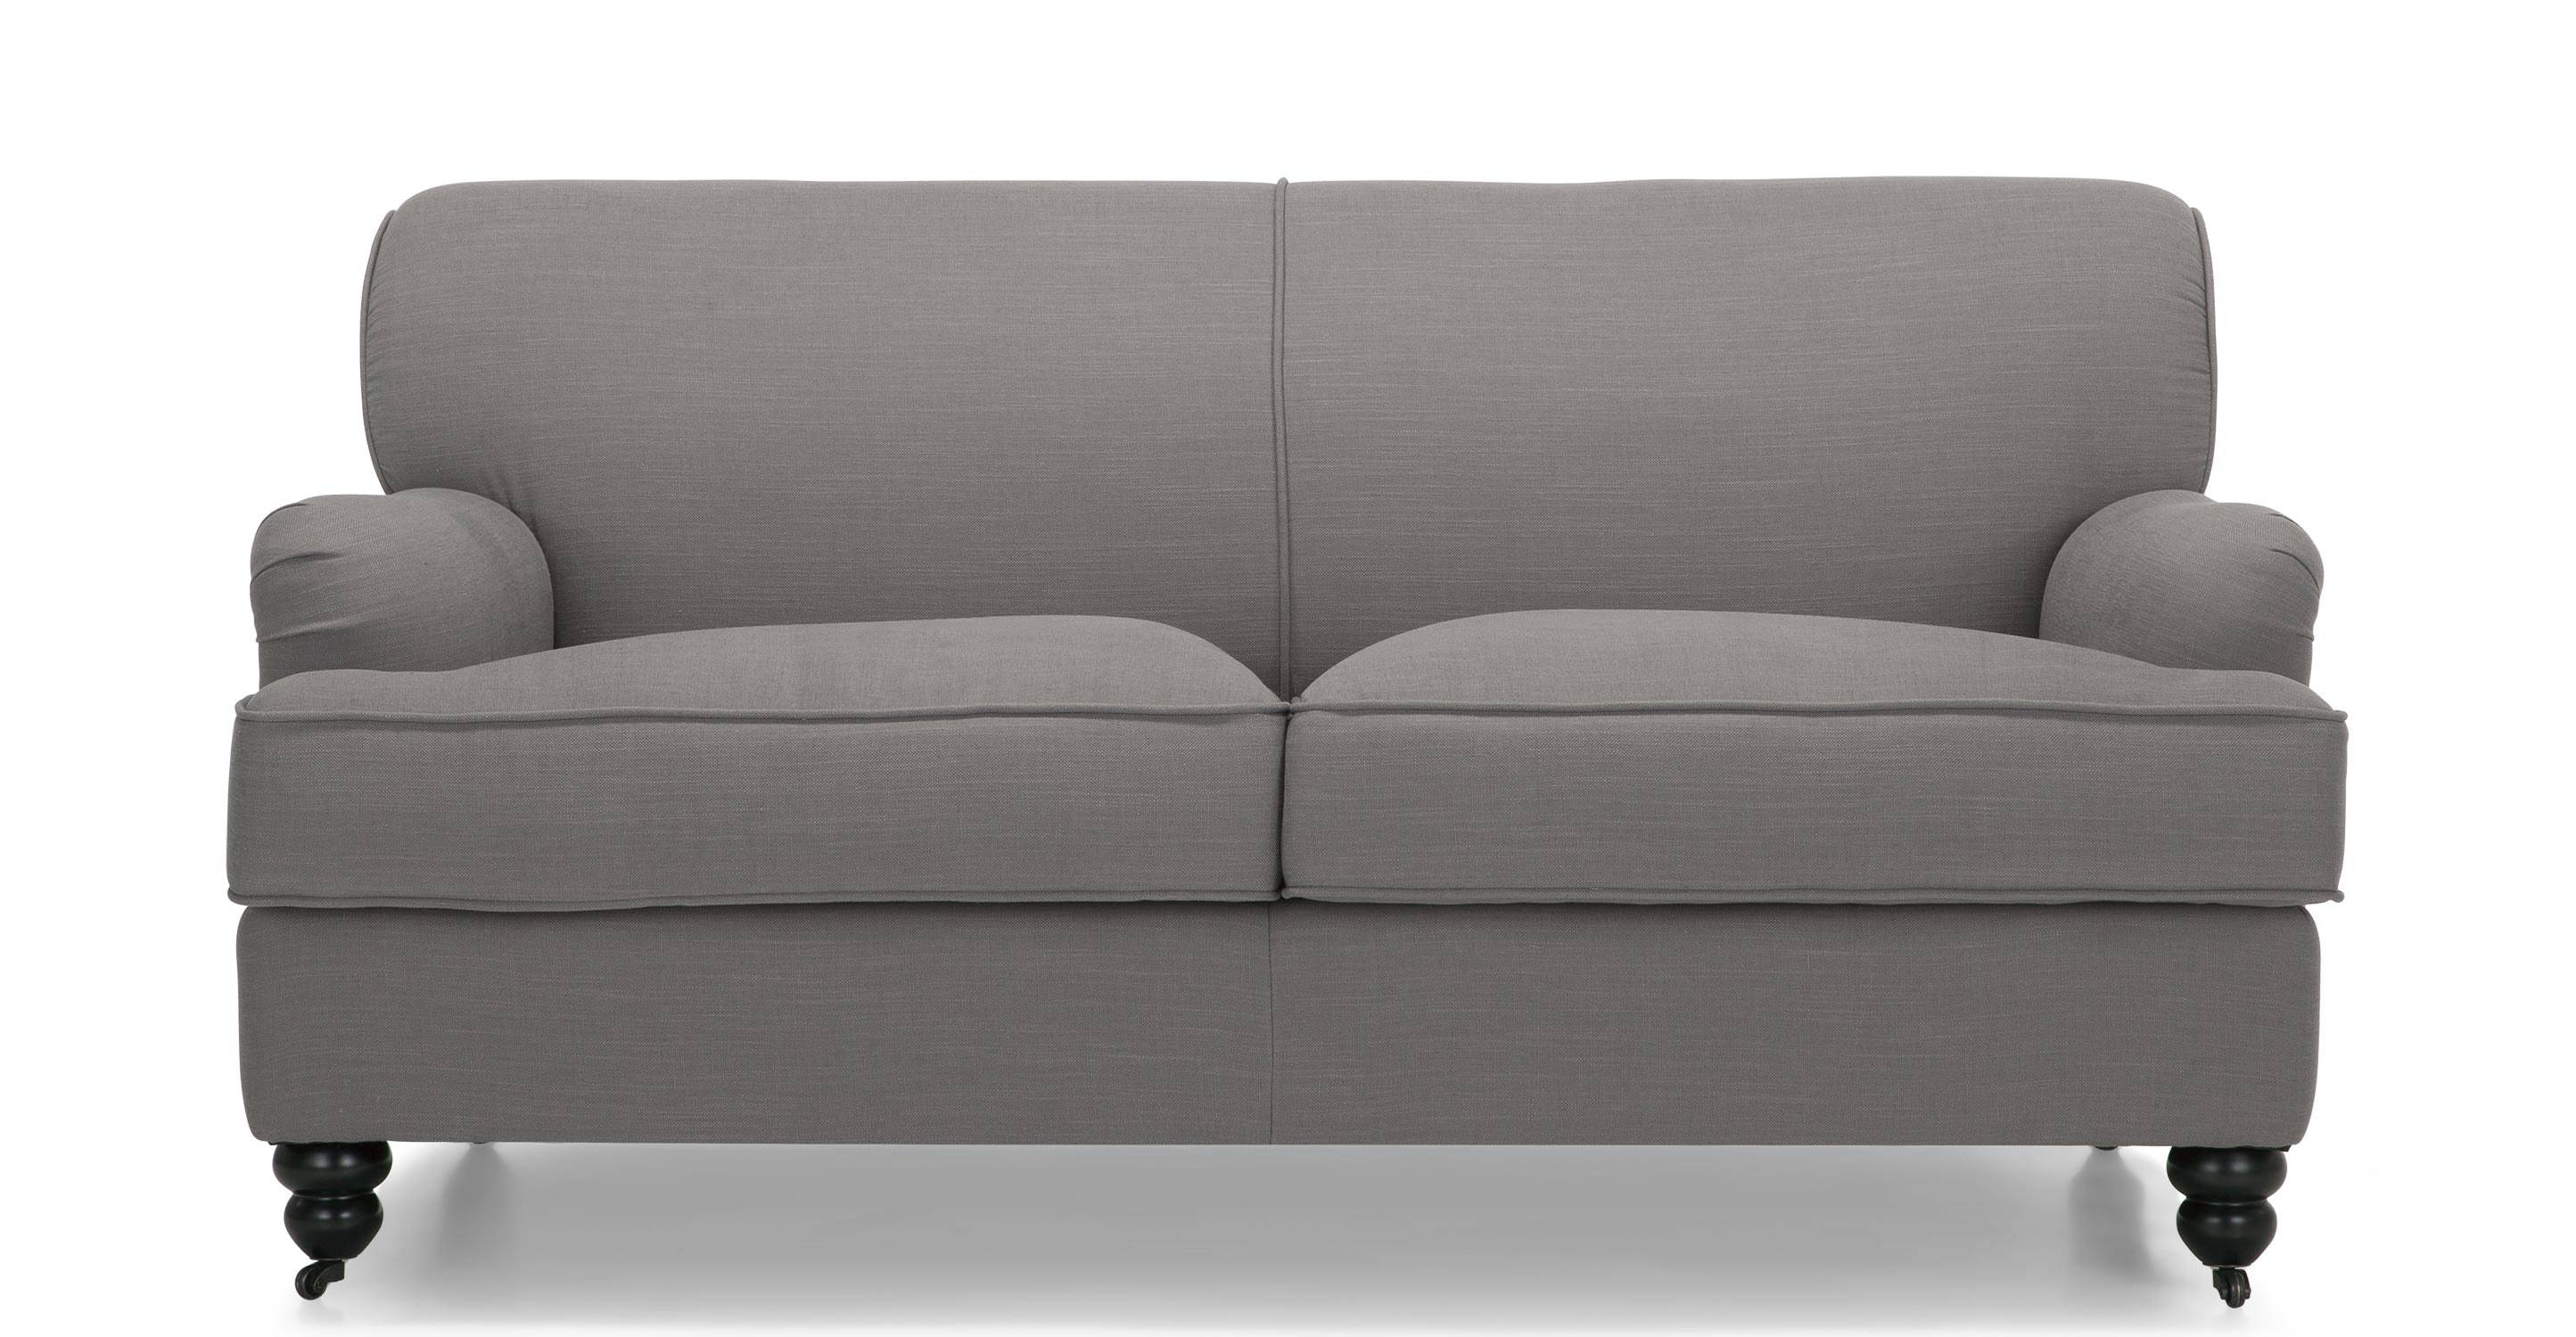 Orson 2 Seater Sofa, Graphite Grey | Made regarding 2 Seater Sofas (Image 18 of 30)